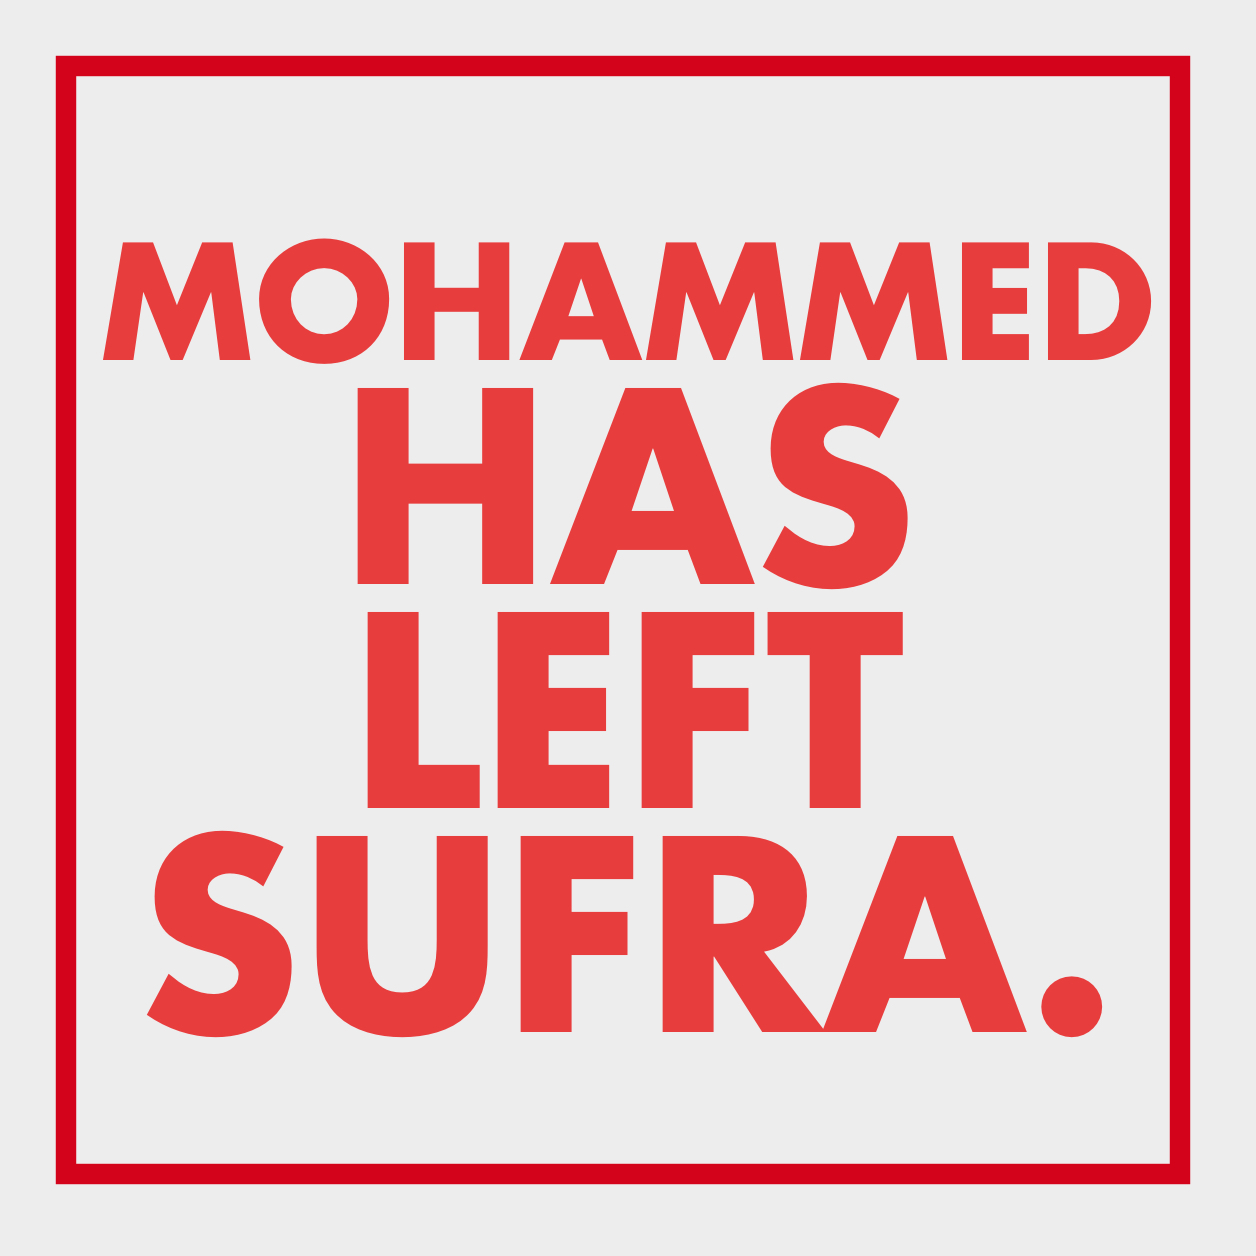 Mohammed Has Left Sufra.